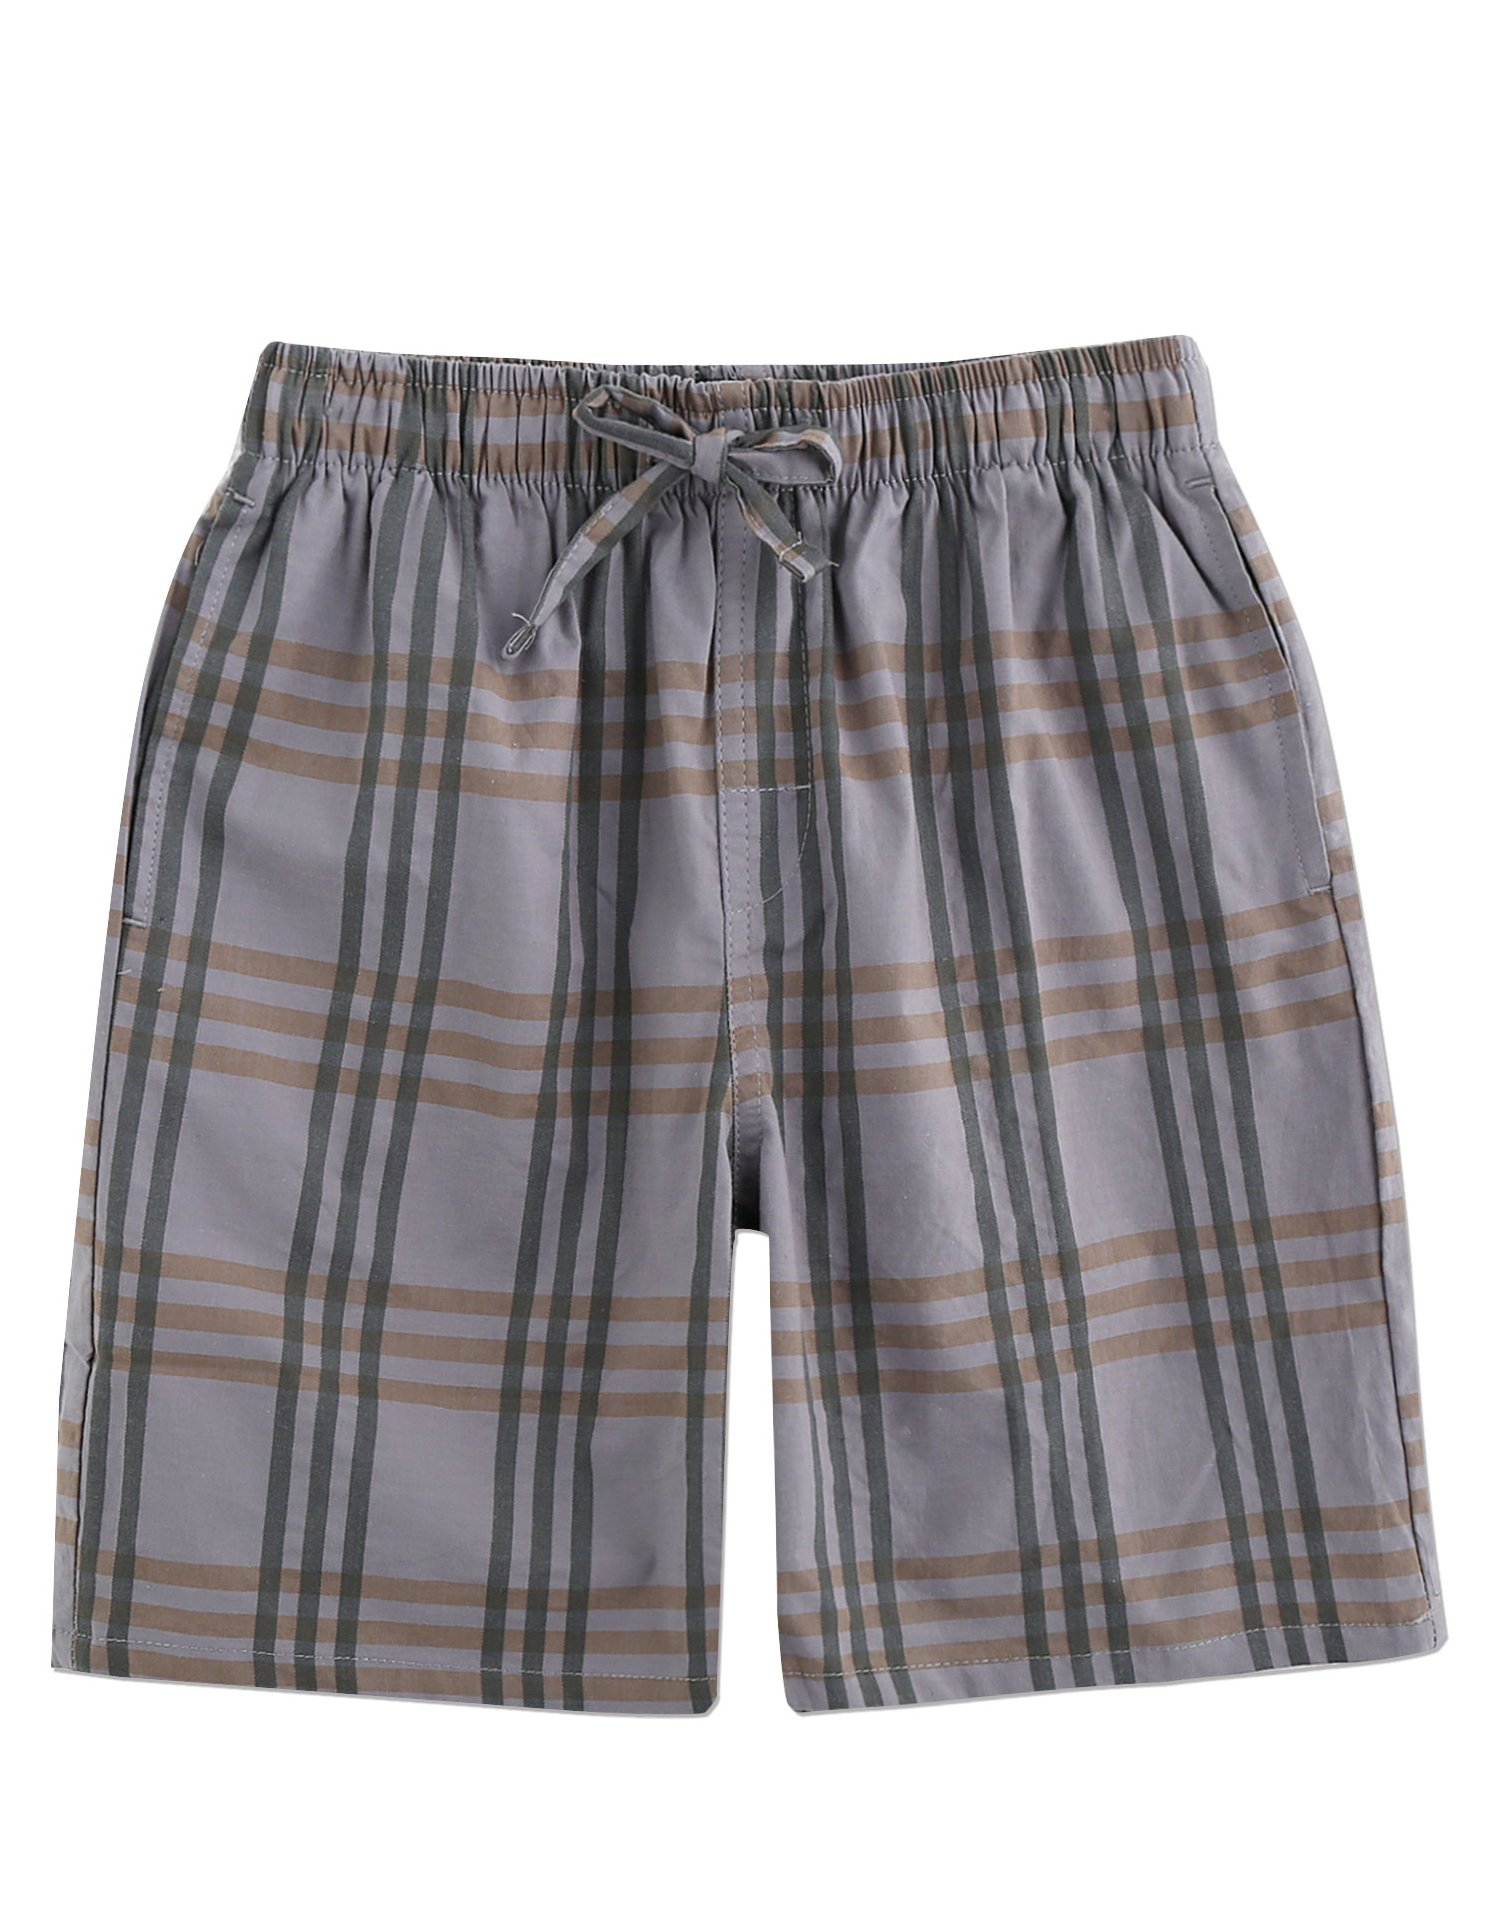 TINFL Boys Plaid Check Soft 100% Cotton Lounge Shorts BSP-04-Lightgrey-YL